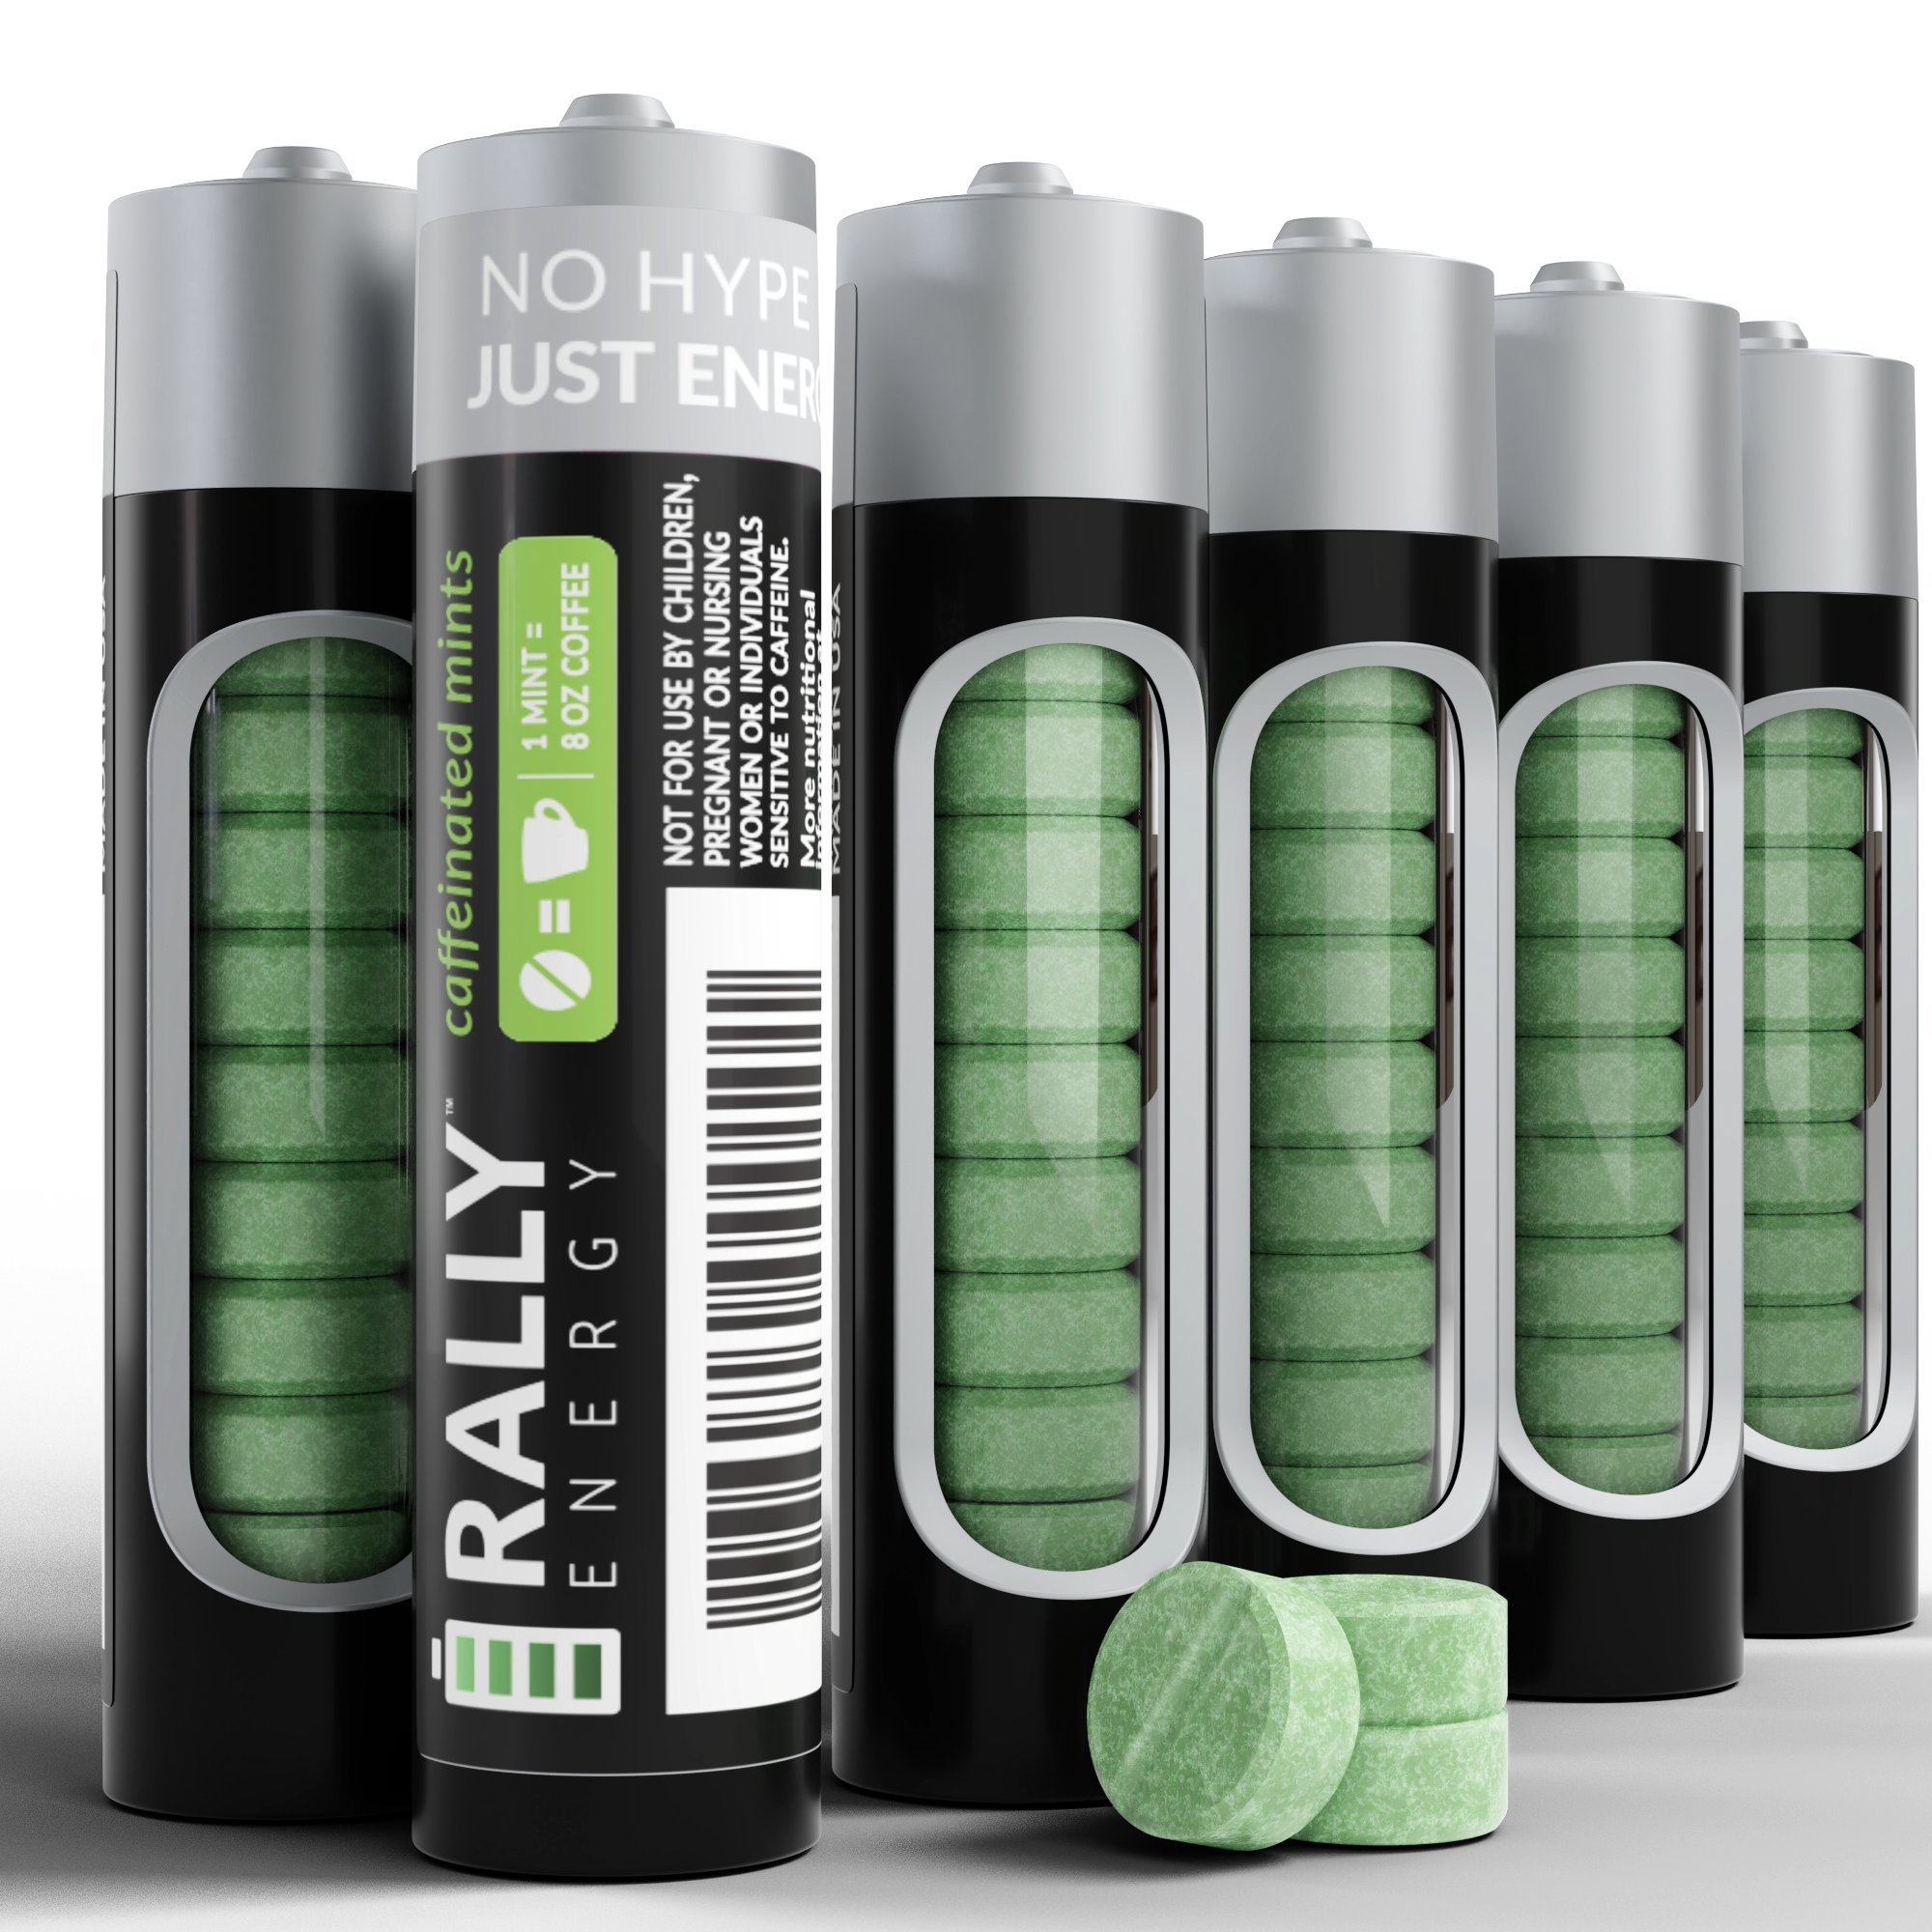 Caffeine Mints by Rally, 60milligram Caffeine, Instant Energy, Fresh Breath Caffeinated Mints, 0 Sugar, Natural Peppermint Flavor (6 Packs, 60 Mint) by Rally Energy